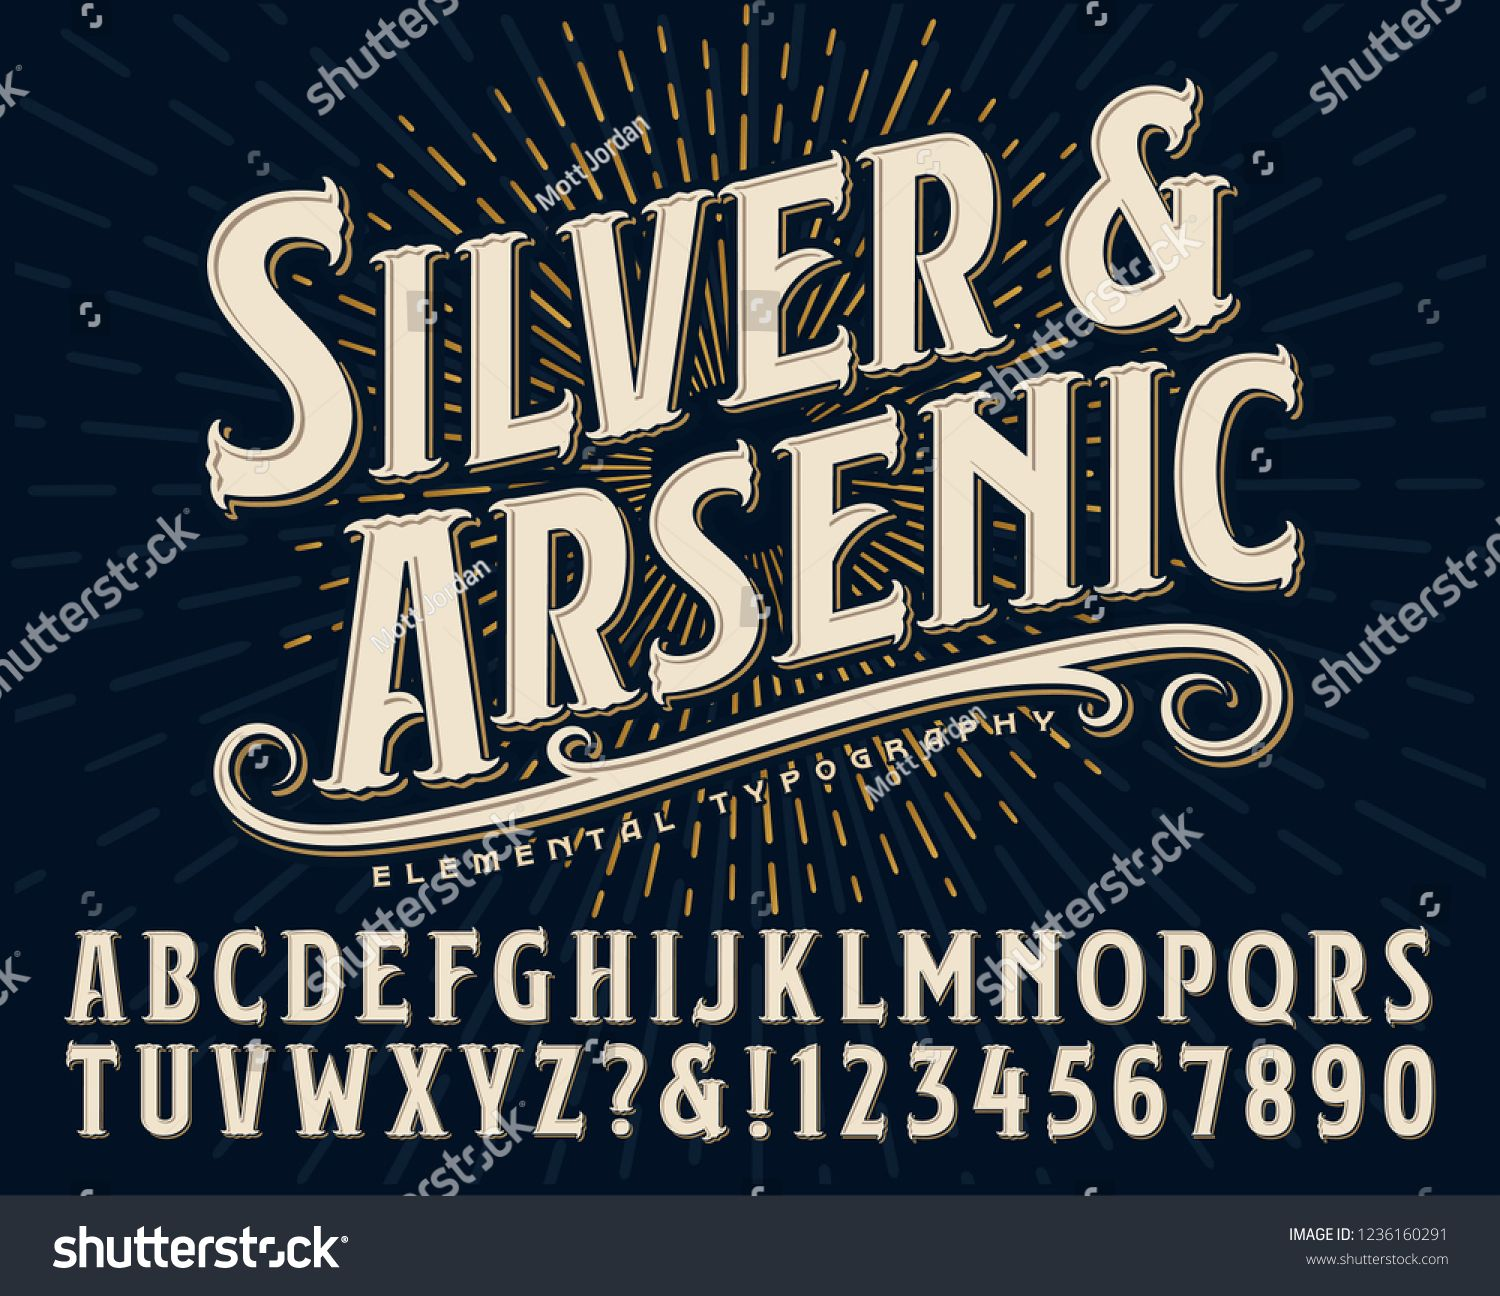 Silver And Arsenic Font Is An Old Style Display Alphabet This